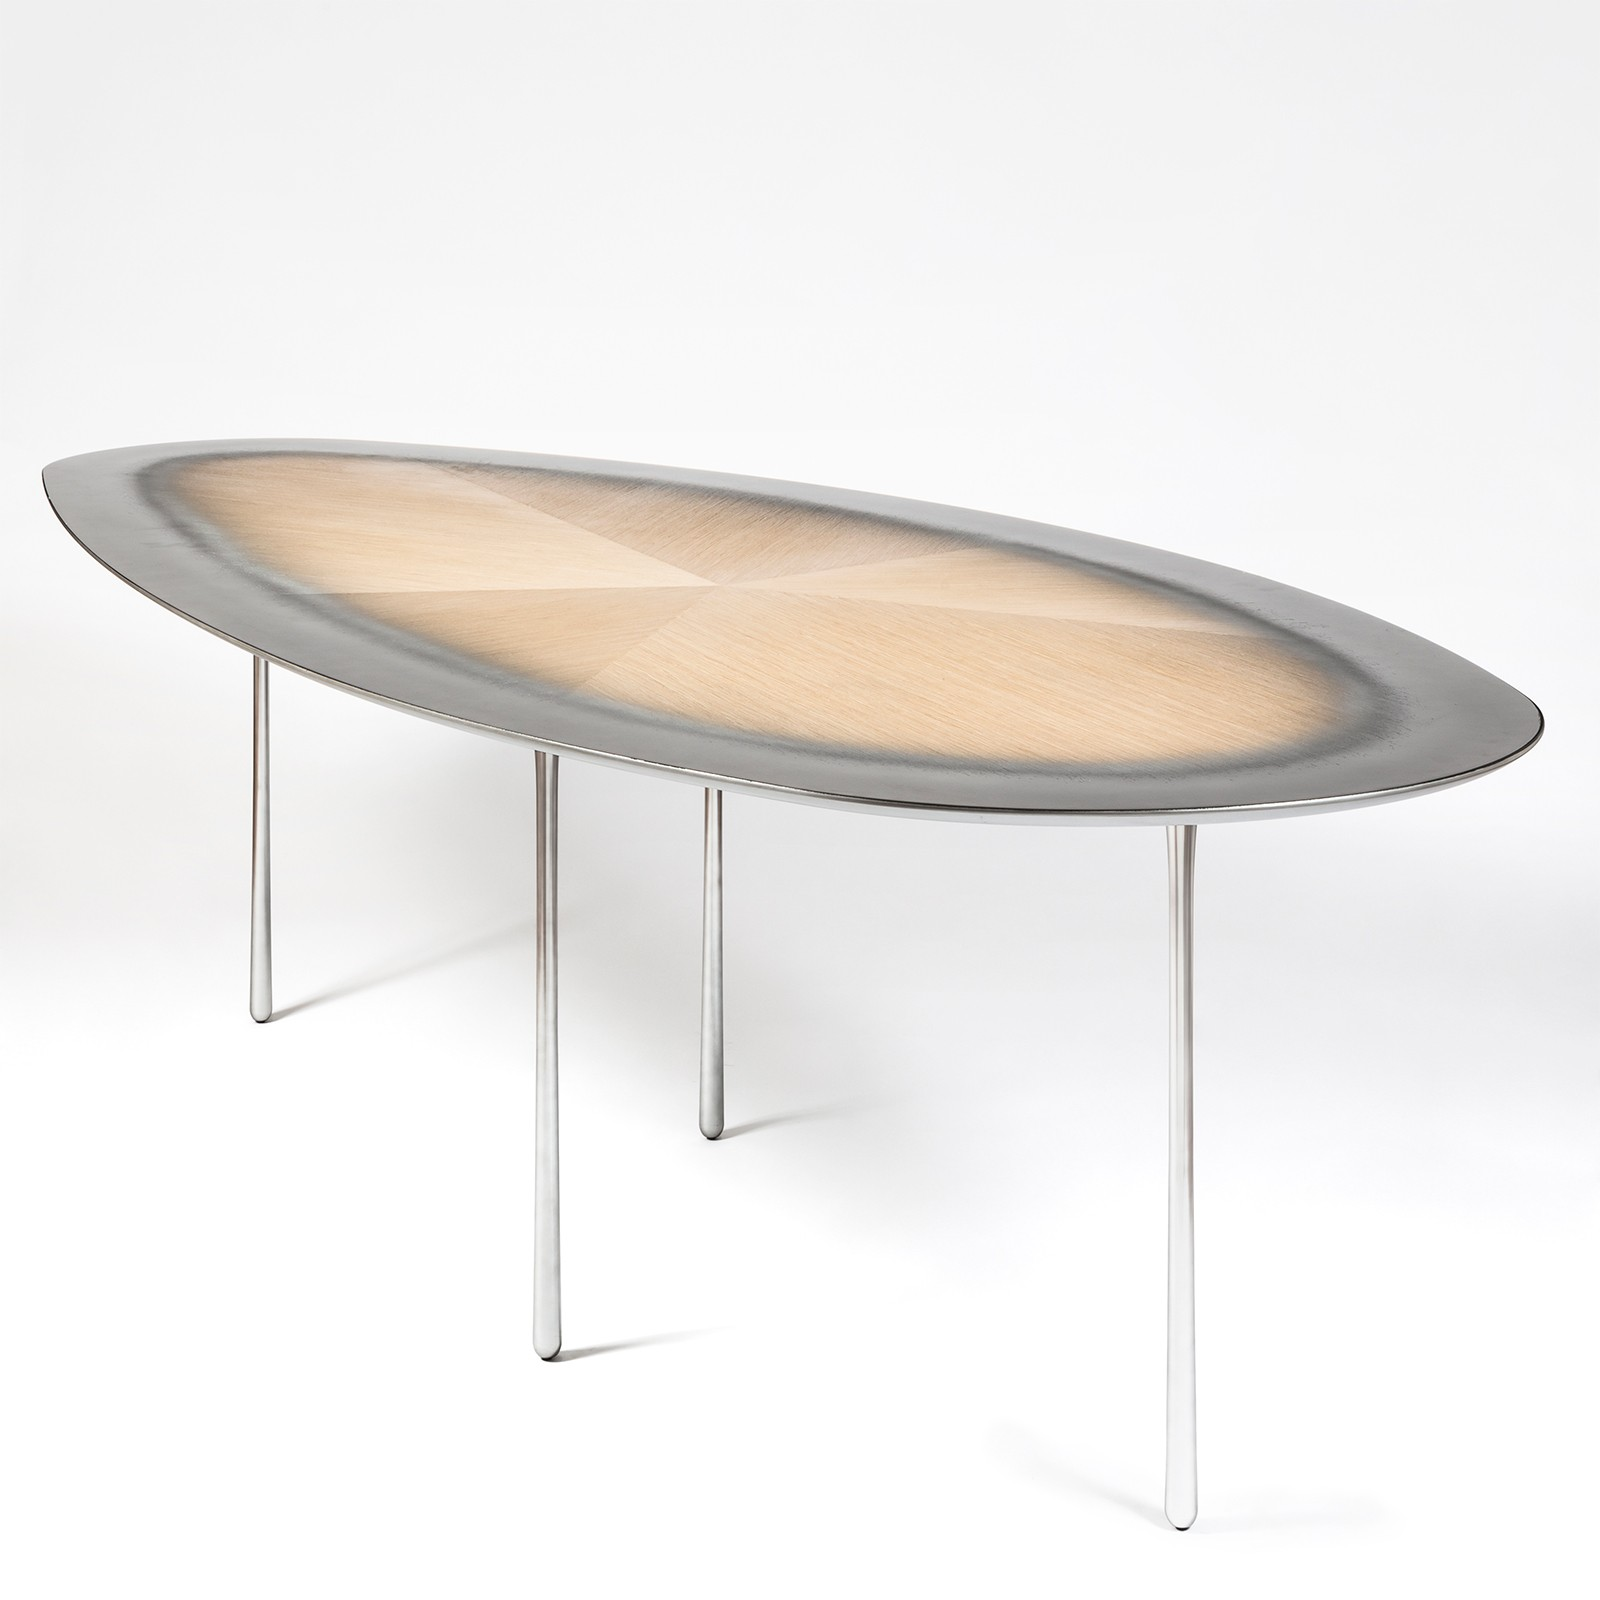 Echo Oval Table - The echo table pushes the material limits of metal and wood to imagine an intangible reality. The grain of wood tells its history, and by using a technique of exposing the hardwood (winter season) and embedded metal into the lines of the softwood (summer season), each growth creates an elusive boundary between the two materials. The objectivity further enhanced by the lightness and thinness in the profile of both materials. Beauty and inspiration are found all around us. The table legs reference the shape generated by the spilling of water. The variation in the shapes of the table top resembles that of stones organically formed by sea current. Enacting the activity and motion which would happen around a table. The colours allude to the subtle shades of a sunrise, created in three types of metal: aluminium, copper, and brass. Developed and produced during the Matter of Stuff Designer Residency program in Montalcino. | Matter of Stuff